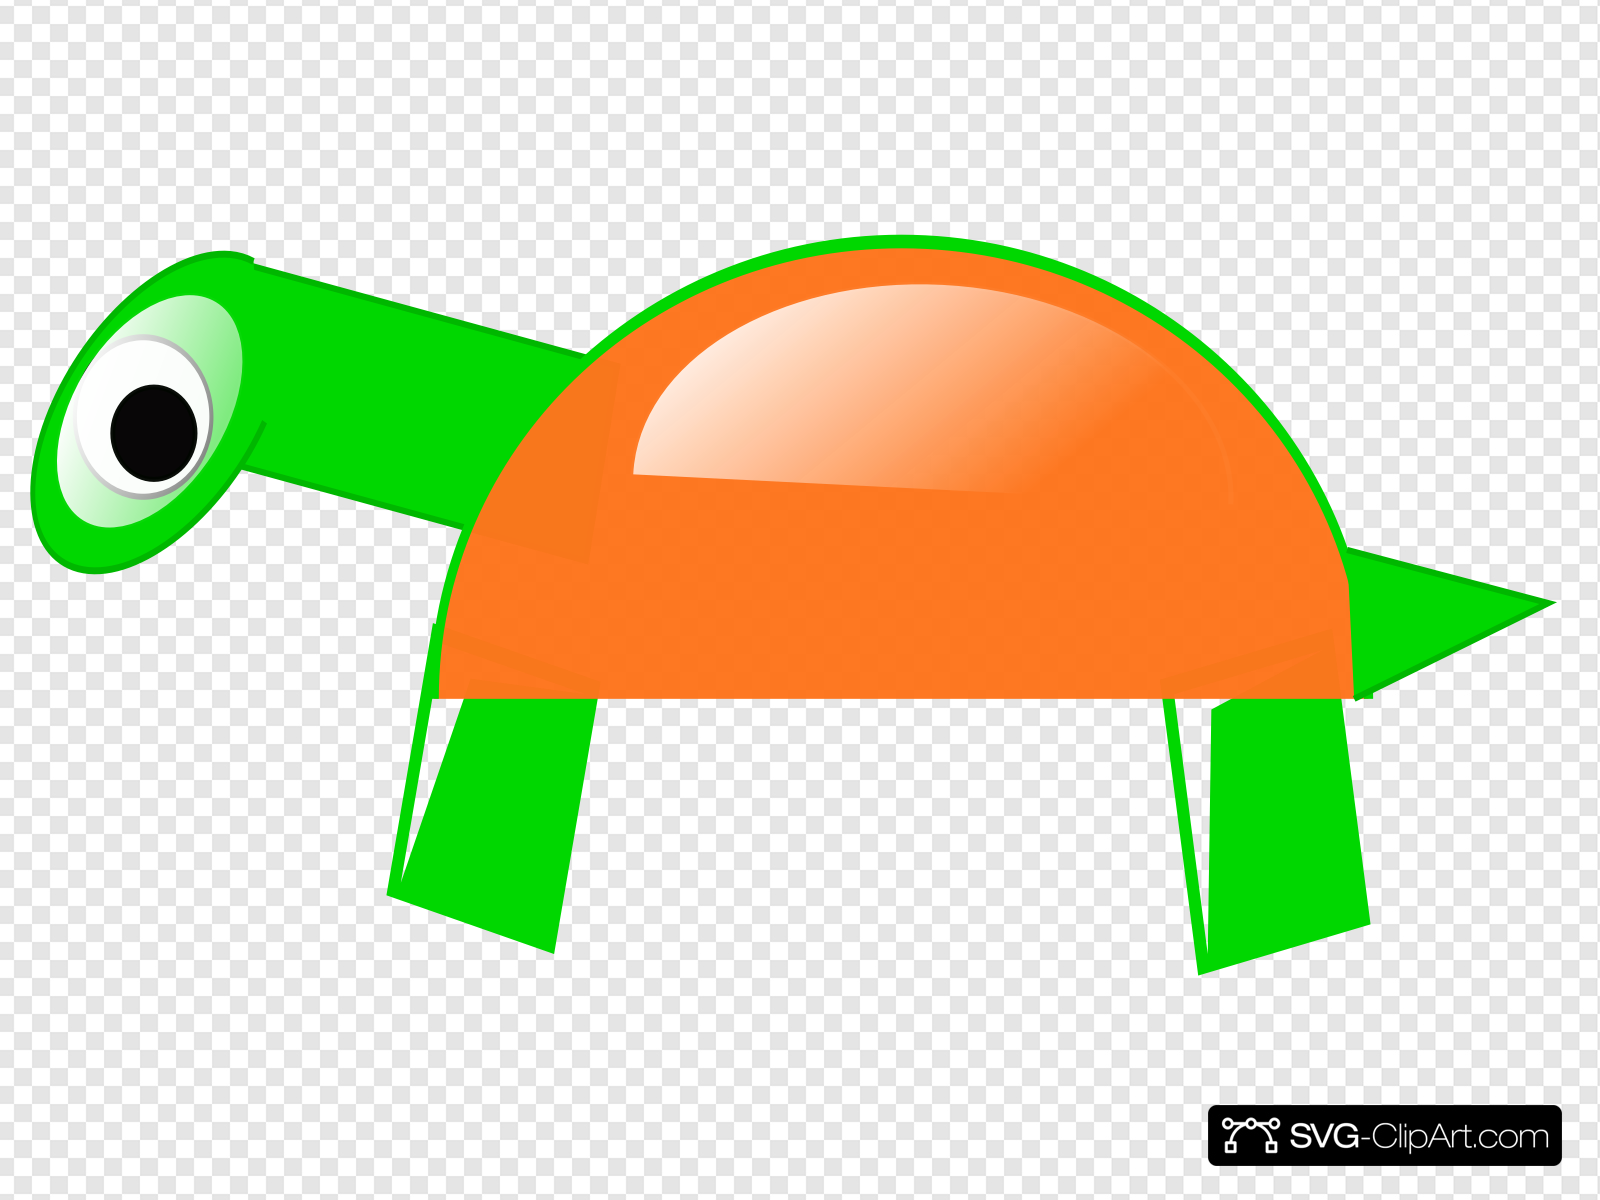 Cartoon Turtle Clip art, Icon and SVG.